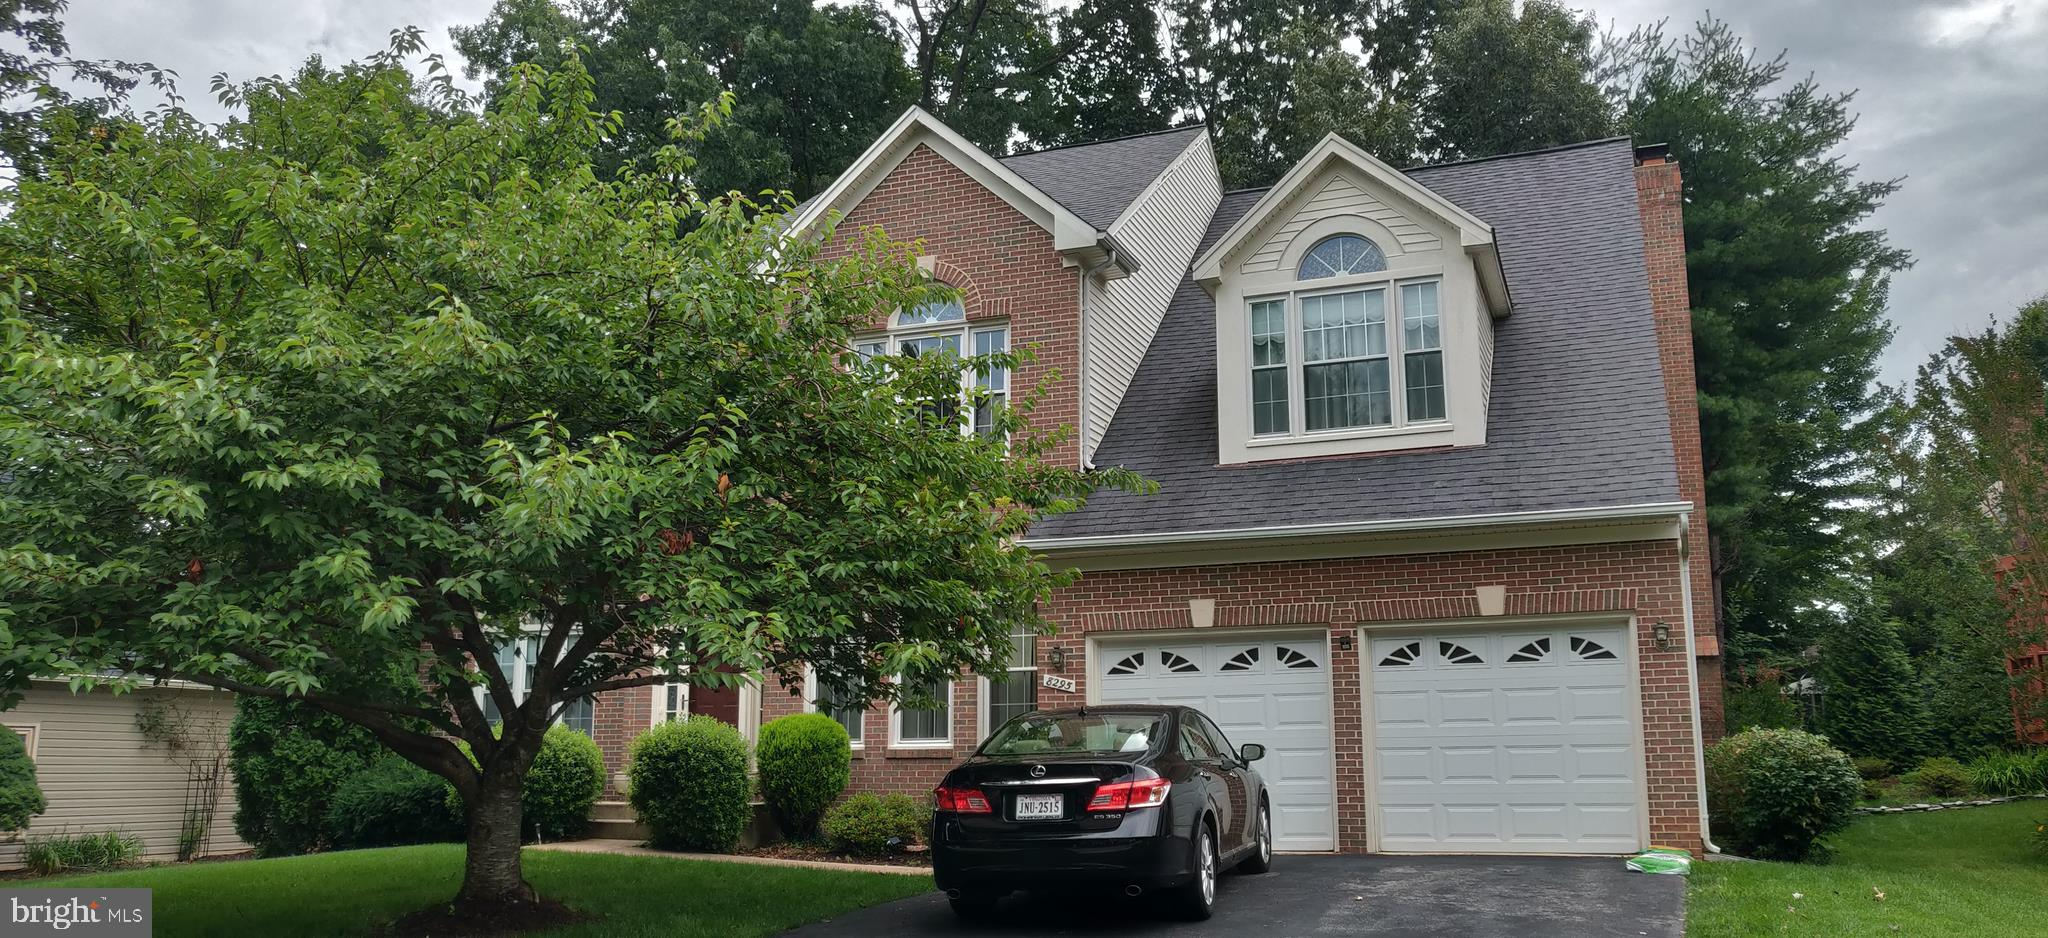 """BEAUTIFUL VAN METRE """"ASHFORD"""" MODEL ON THE CUL-DE-SAC!!*TRIPLE PANE WINDOWS*1ST FLR.LIB.*HARDWOOD 2 STORY FOYER*9'CEILINGS* FR BRICK FP*GOURMET GRANITE KIT. W/SS APPLIANCES,D/OVENS, C-ISLAND C-TOP,D/SINKS,18""""CERAMIC FLRS. & 42""""CABS.*MBR W/VAULTED CEILING & SITTNG AREA, HUGE W/I CLOSET,C-FAN*M.BA. JACUZZI & BOTH UPPER BA'S WITH SKYLIGHTS!* UPGRADED HALLWAY BATH. W/I CLOSETS IN ALL ROOMS. 2 ZONE GAS HEAT & CAC*LAWN SPRINKLER SYS. LARGE DECK BACK TO TREES. OWNER AGENT."""